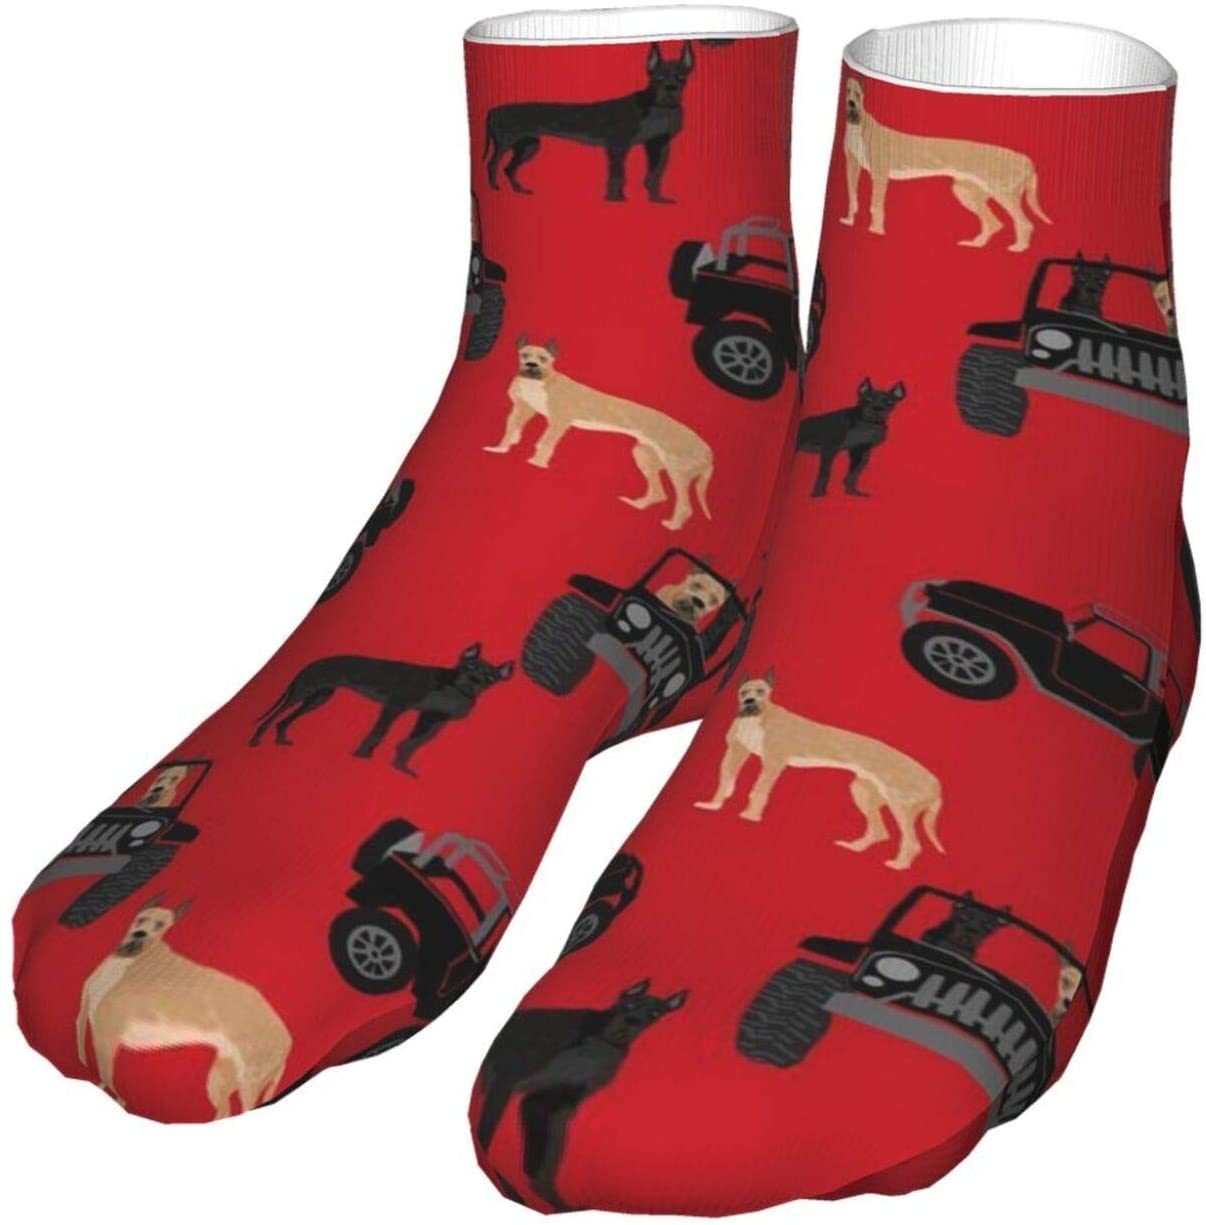 antcreptson Great Dane in Jeeps Cute Dogs Black and Red Athletic Hiking Crew Socks Womens Mens Socks Soft Thick Cozy Warm Casual Compression Socks